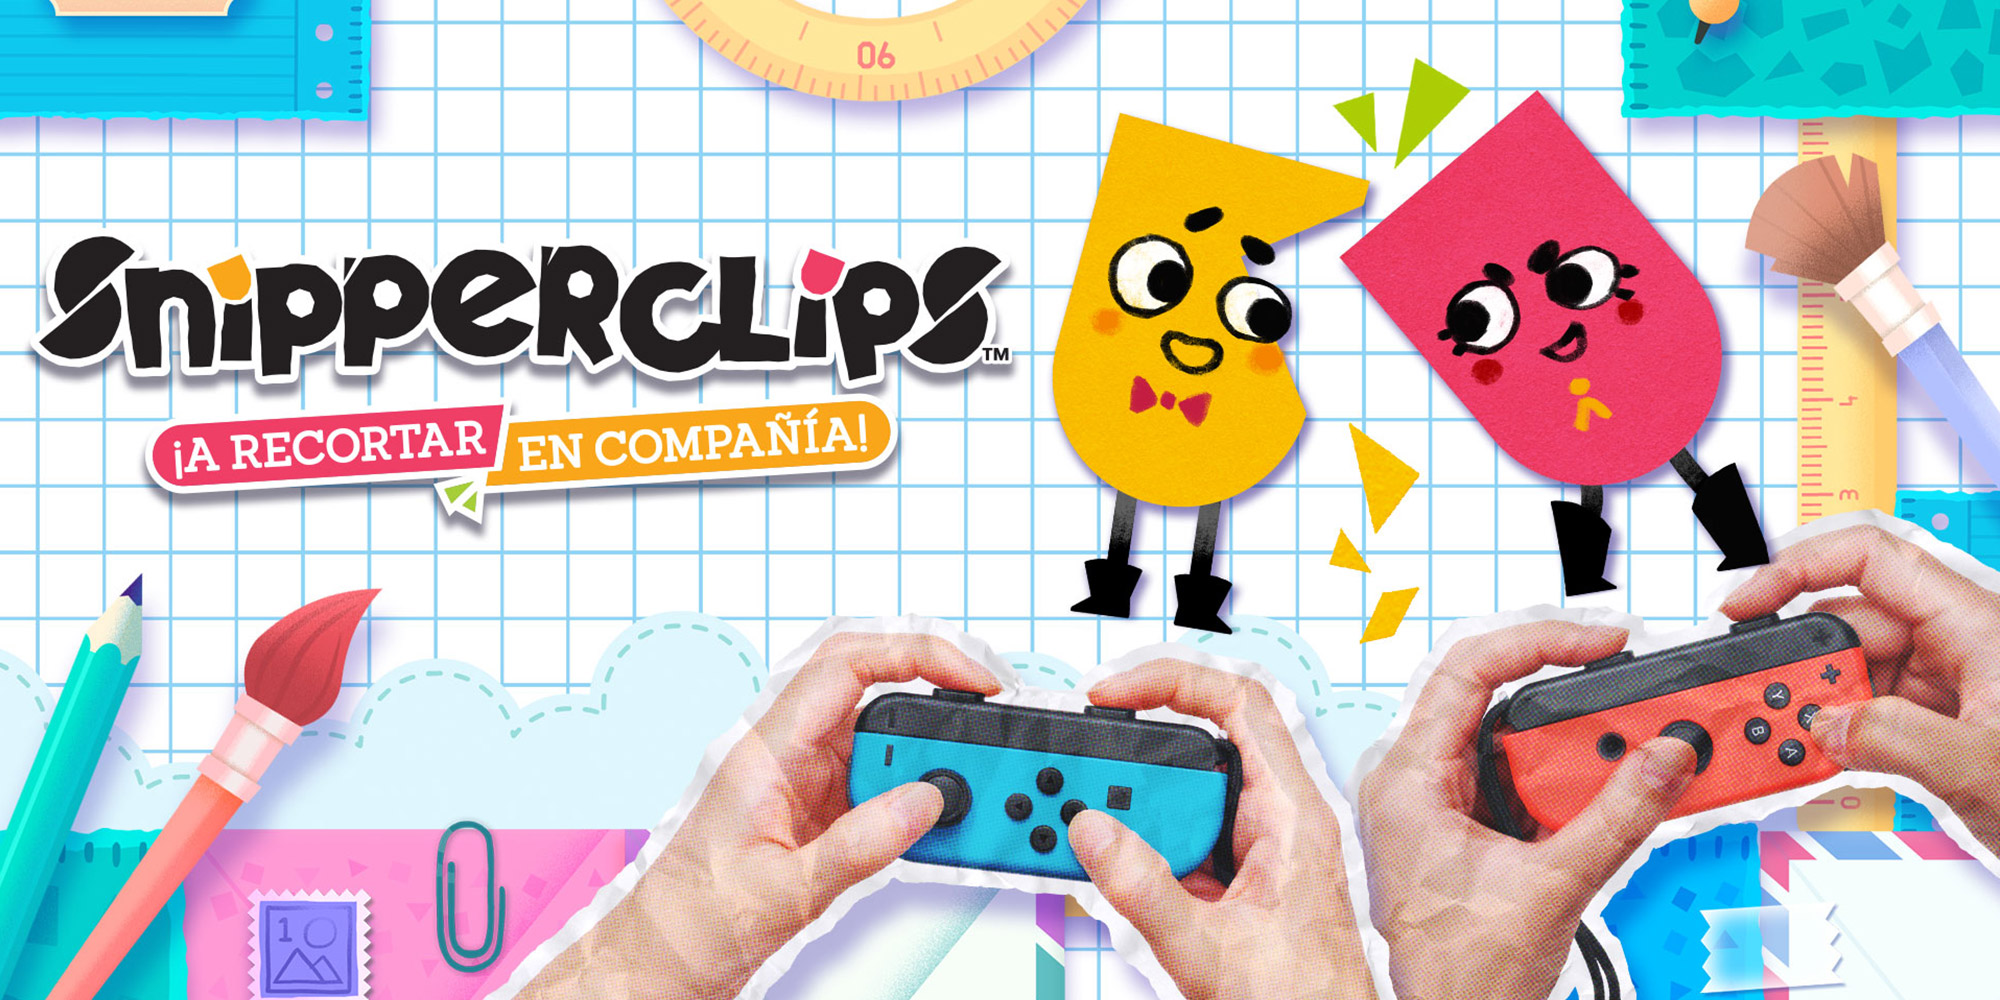 H2x1_NSwitchDS_Snipperclips_esES.jpg